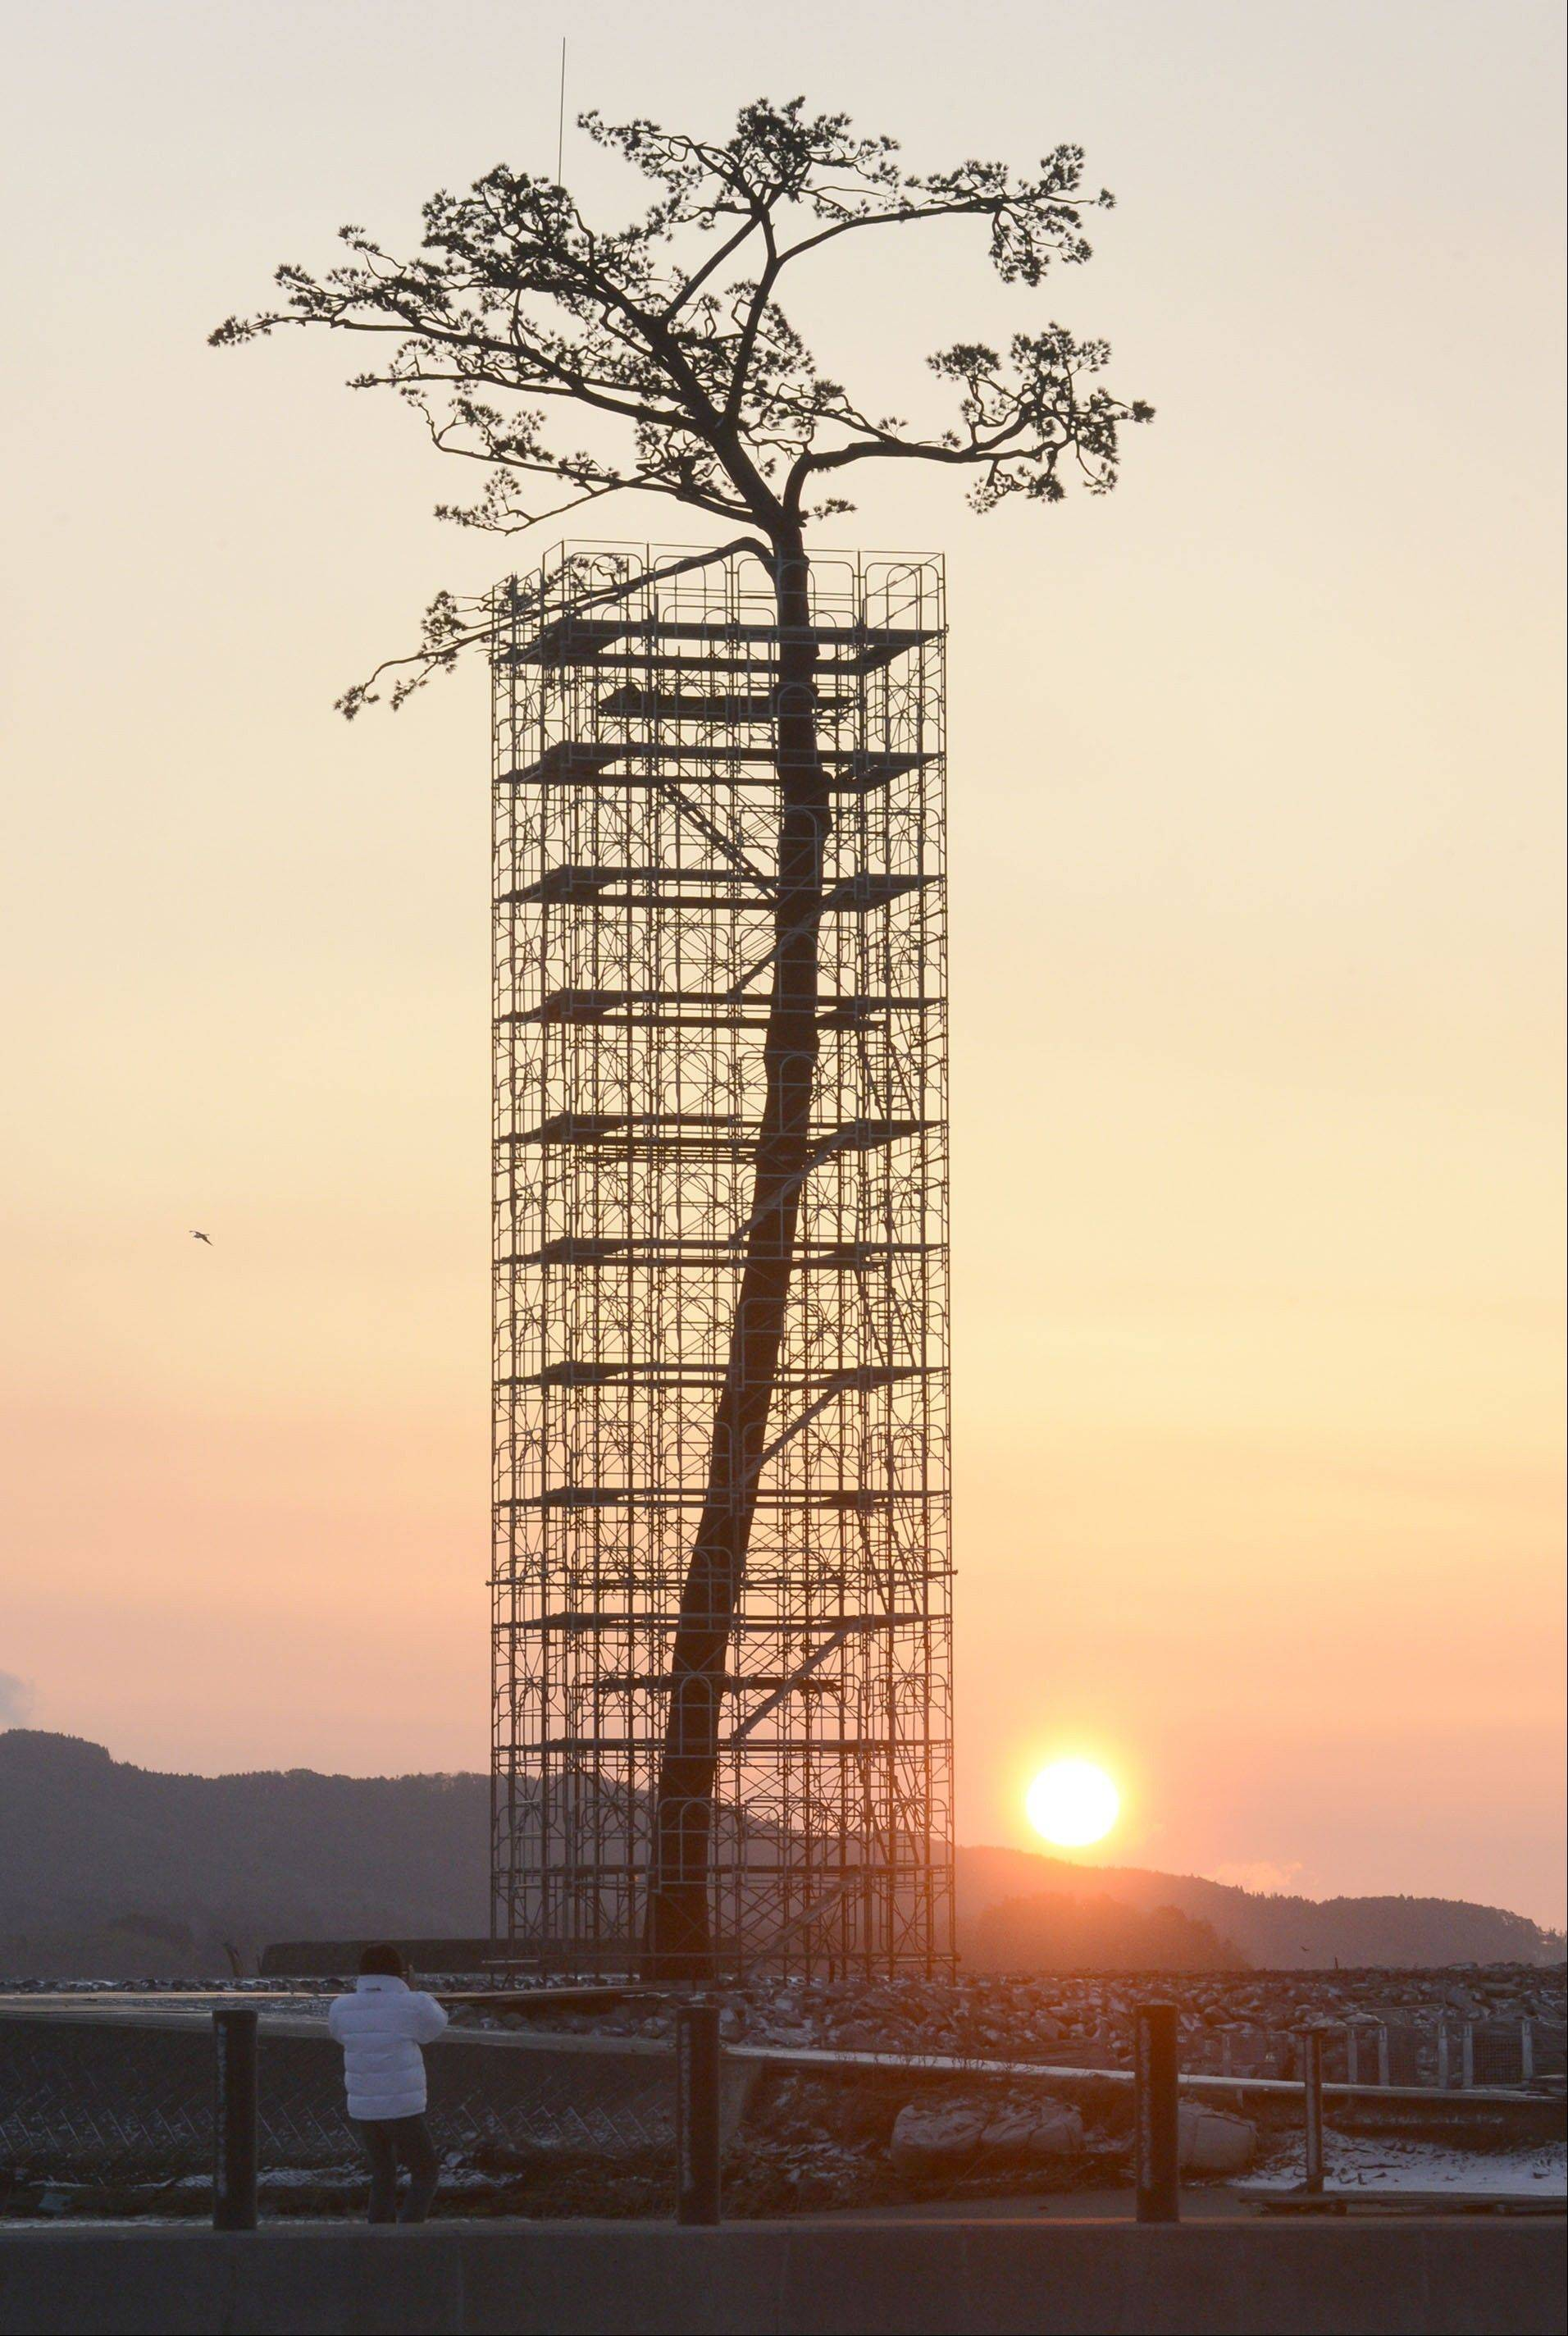 "An artificially-restored ""miracle pine tree,"" that survived the March 11, 2011 tsunami, is silhouetted against the rising sun in Rikuzentakata, Iwate prefecture, Japan, Monday, March 11, 2013. Japan marked the second anniversary of its earthquake, tsunami and nuclear catastrophe, that killed nearly 19, 000 people in areas along Japan's northeastern coast. The 27-meter (88-foot and 7-inch)-tall tree, a single survivor among 70,000 trees in a forest along the coast, has just been restored in a project to preserve it."